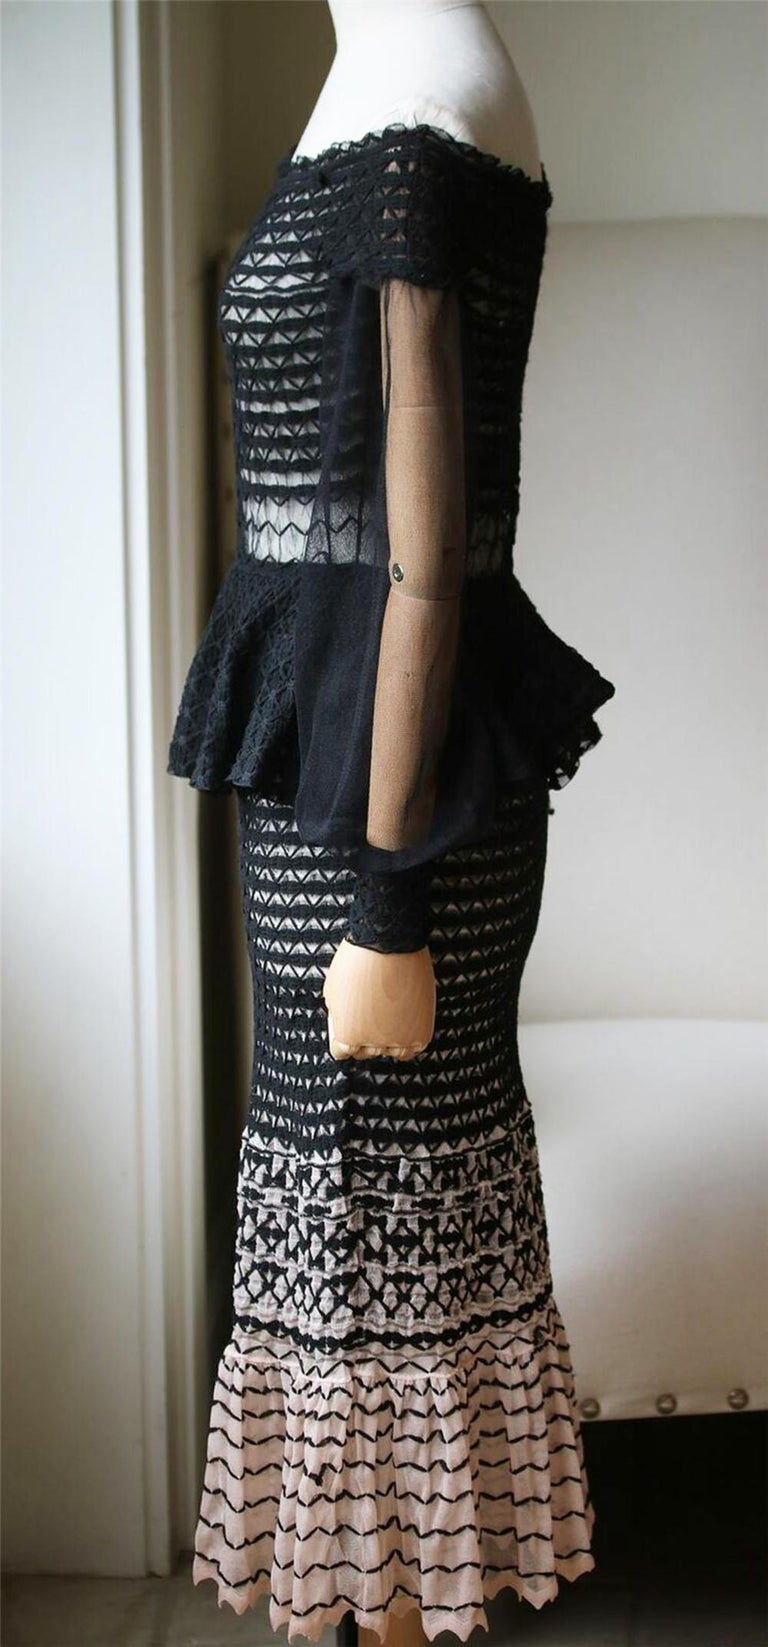 Alexander McQueen Off-the-Shoulder Knitted Dress  In Excellent Condition For Sale In London, GB